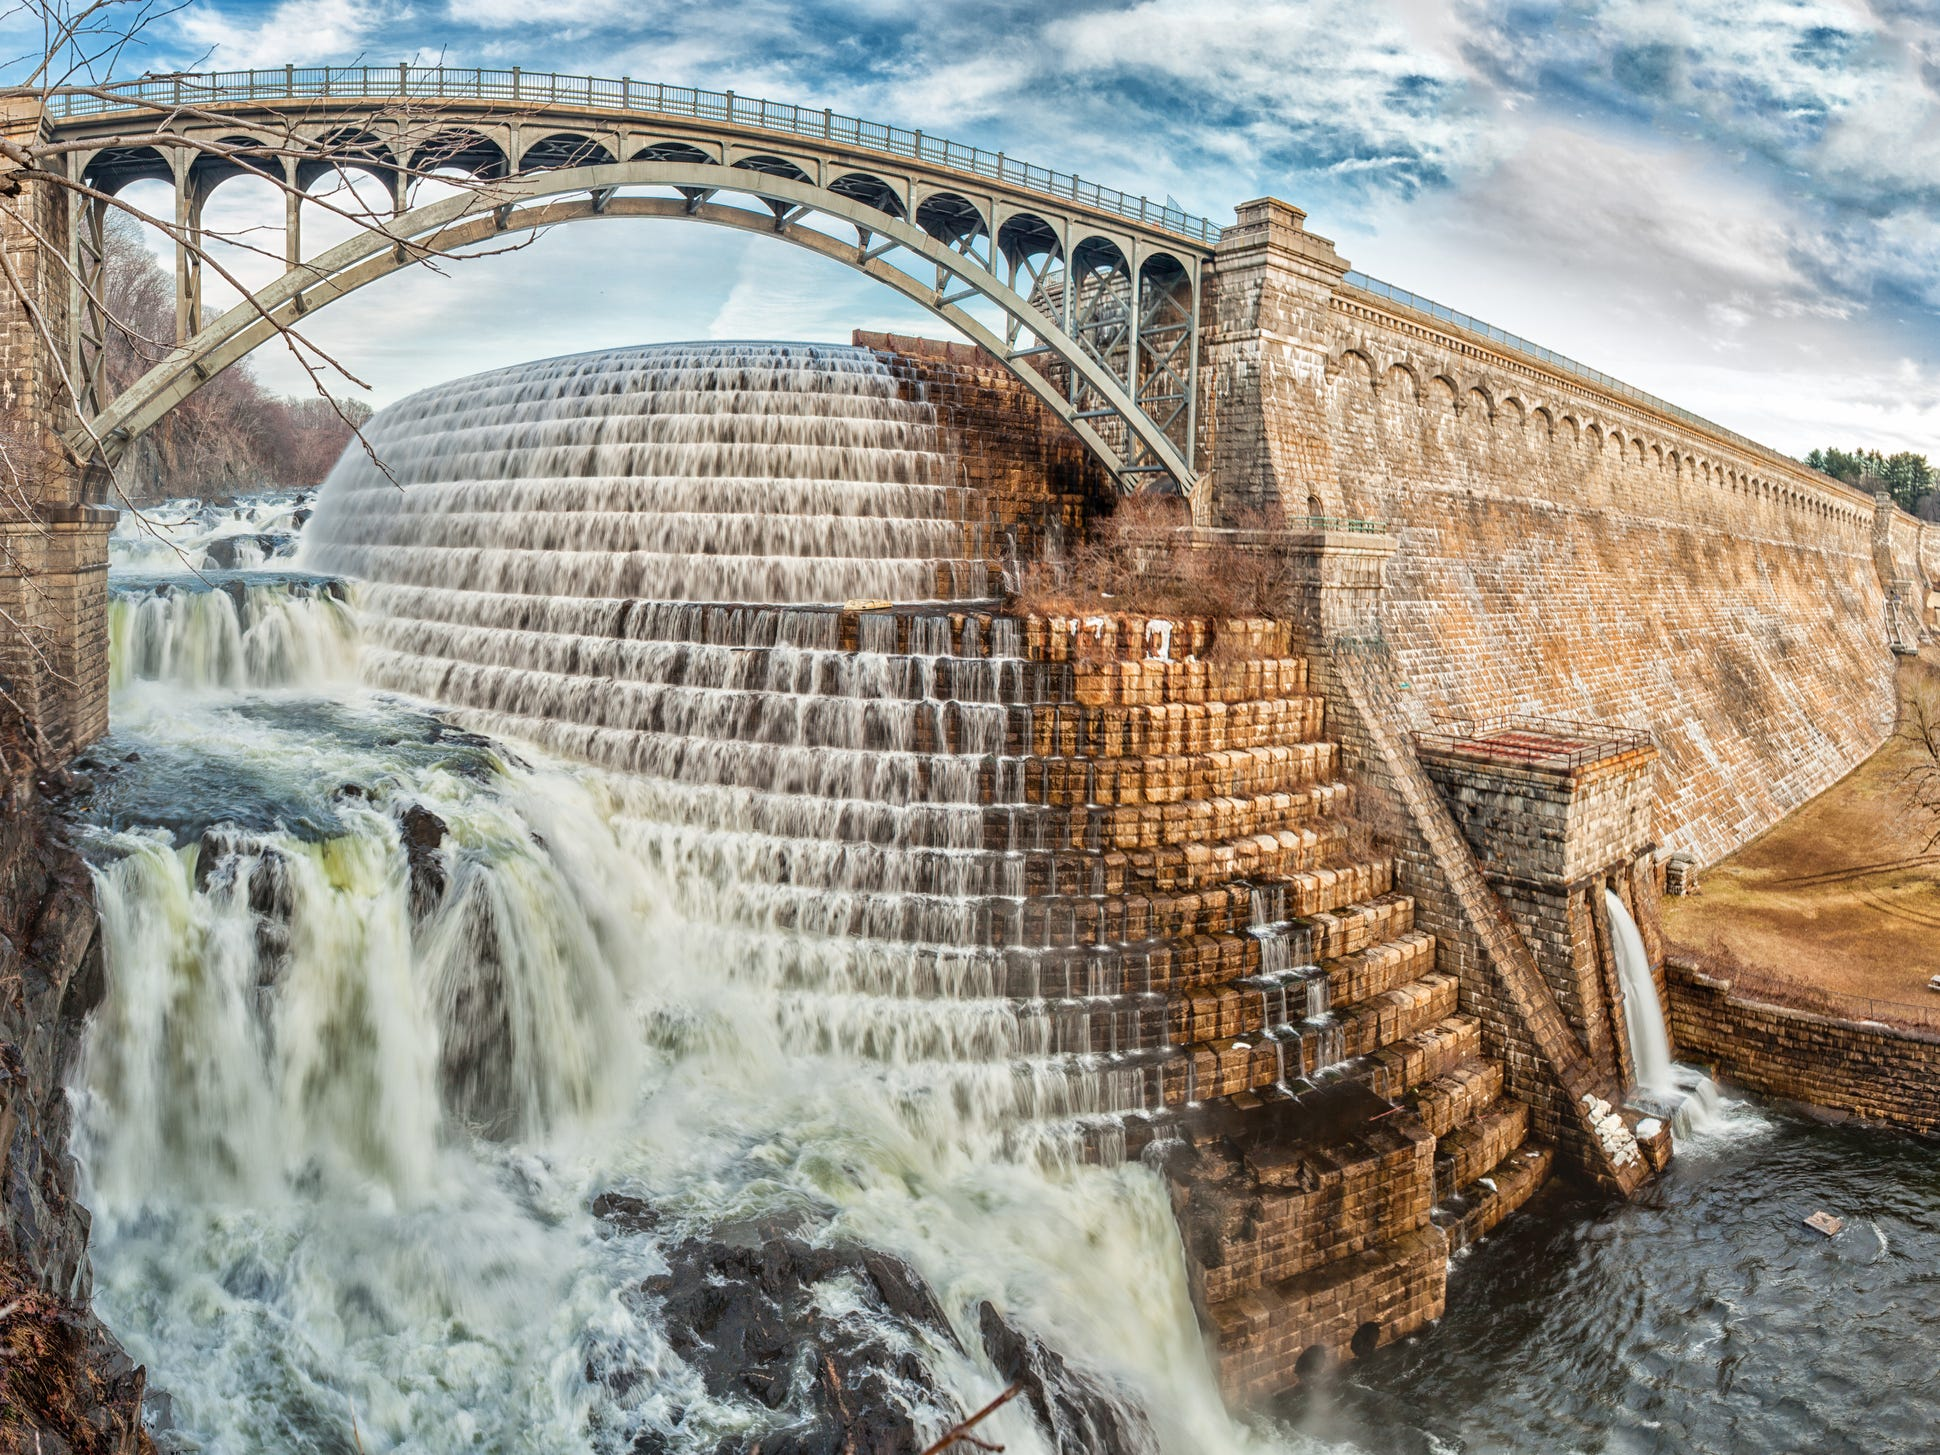 New Croton Dam in New York.